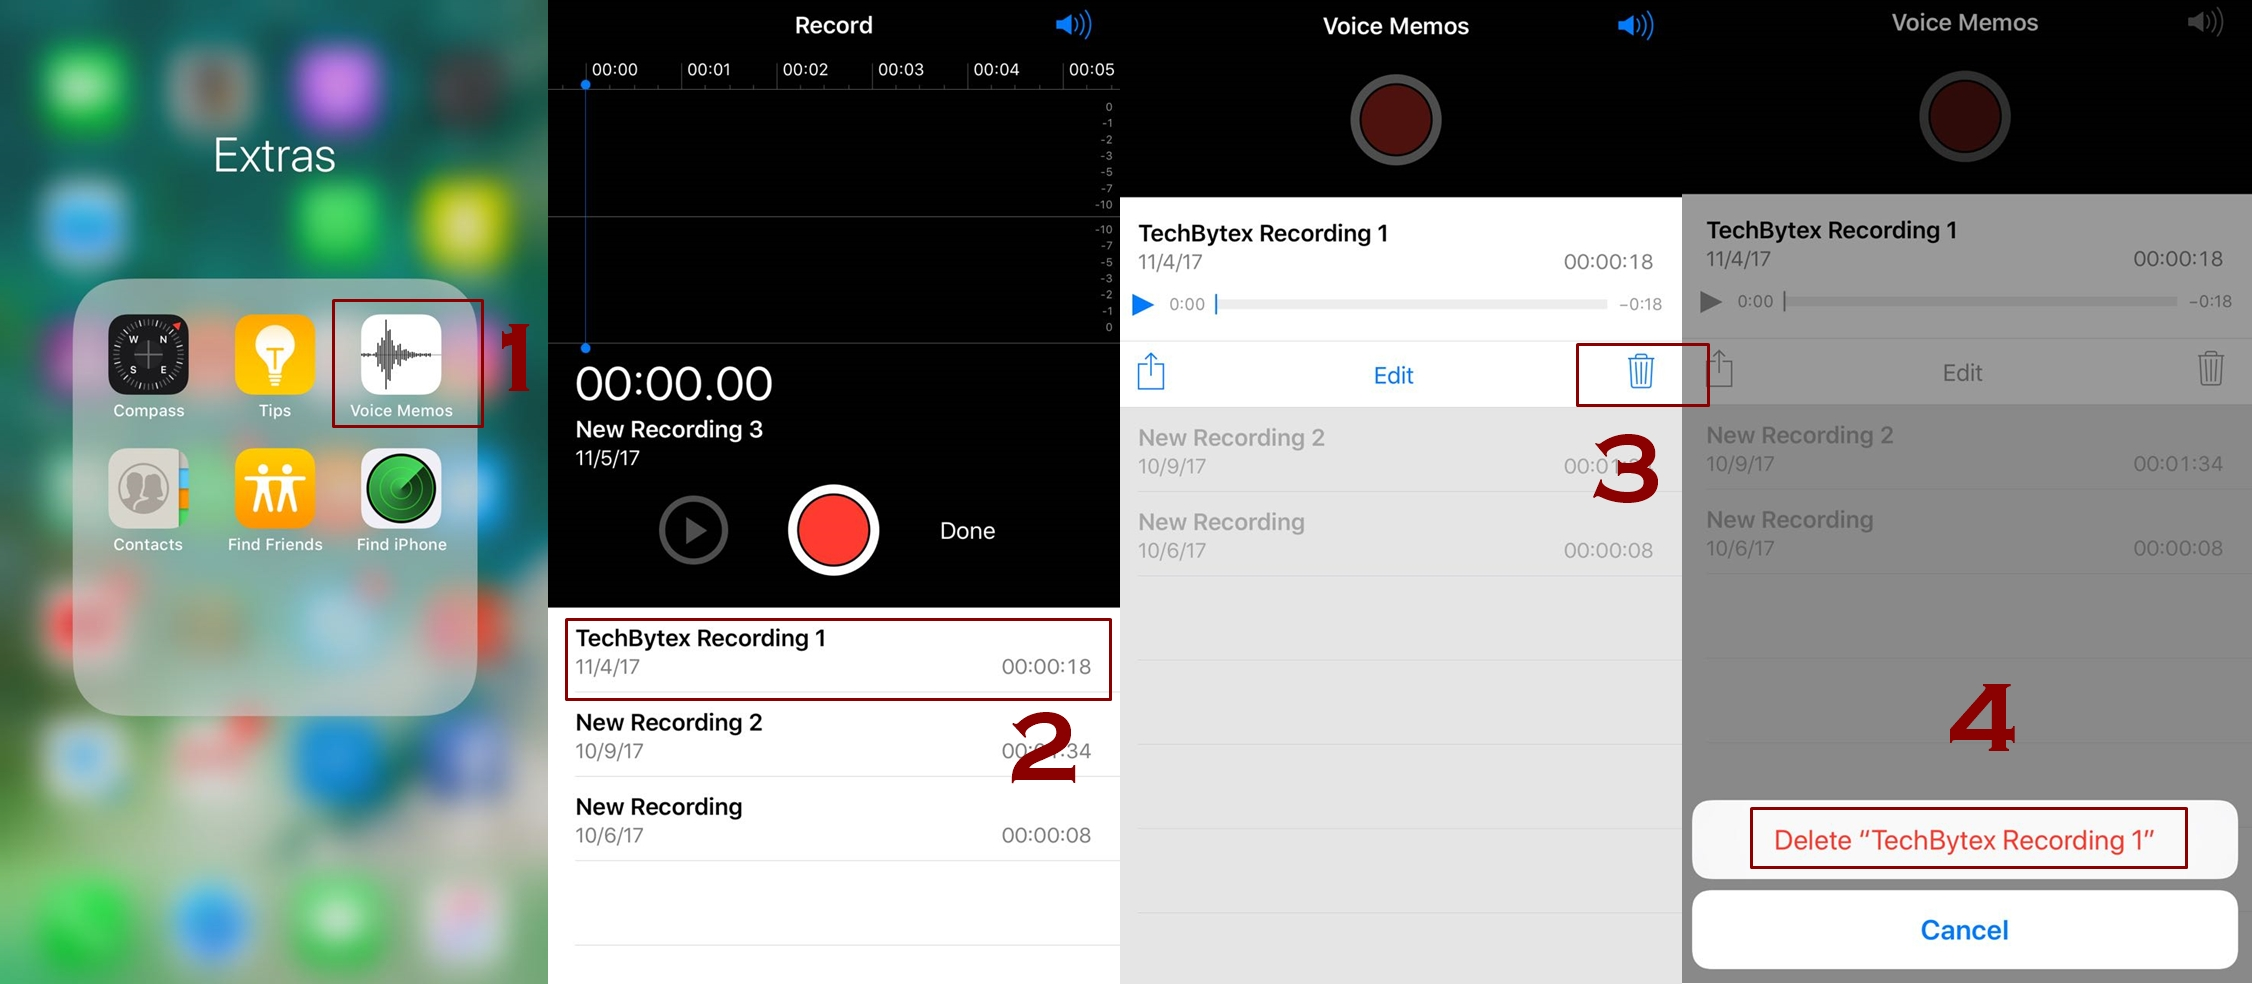 How to delete voice memos on iPhone manually 1 - How to delete voice memos on iPhone